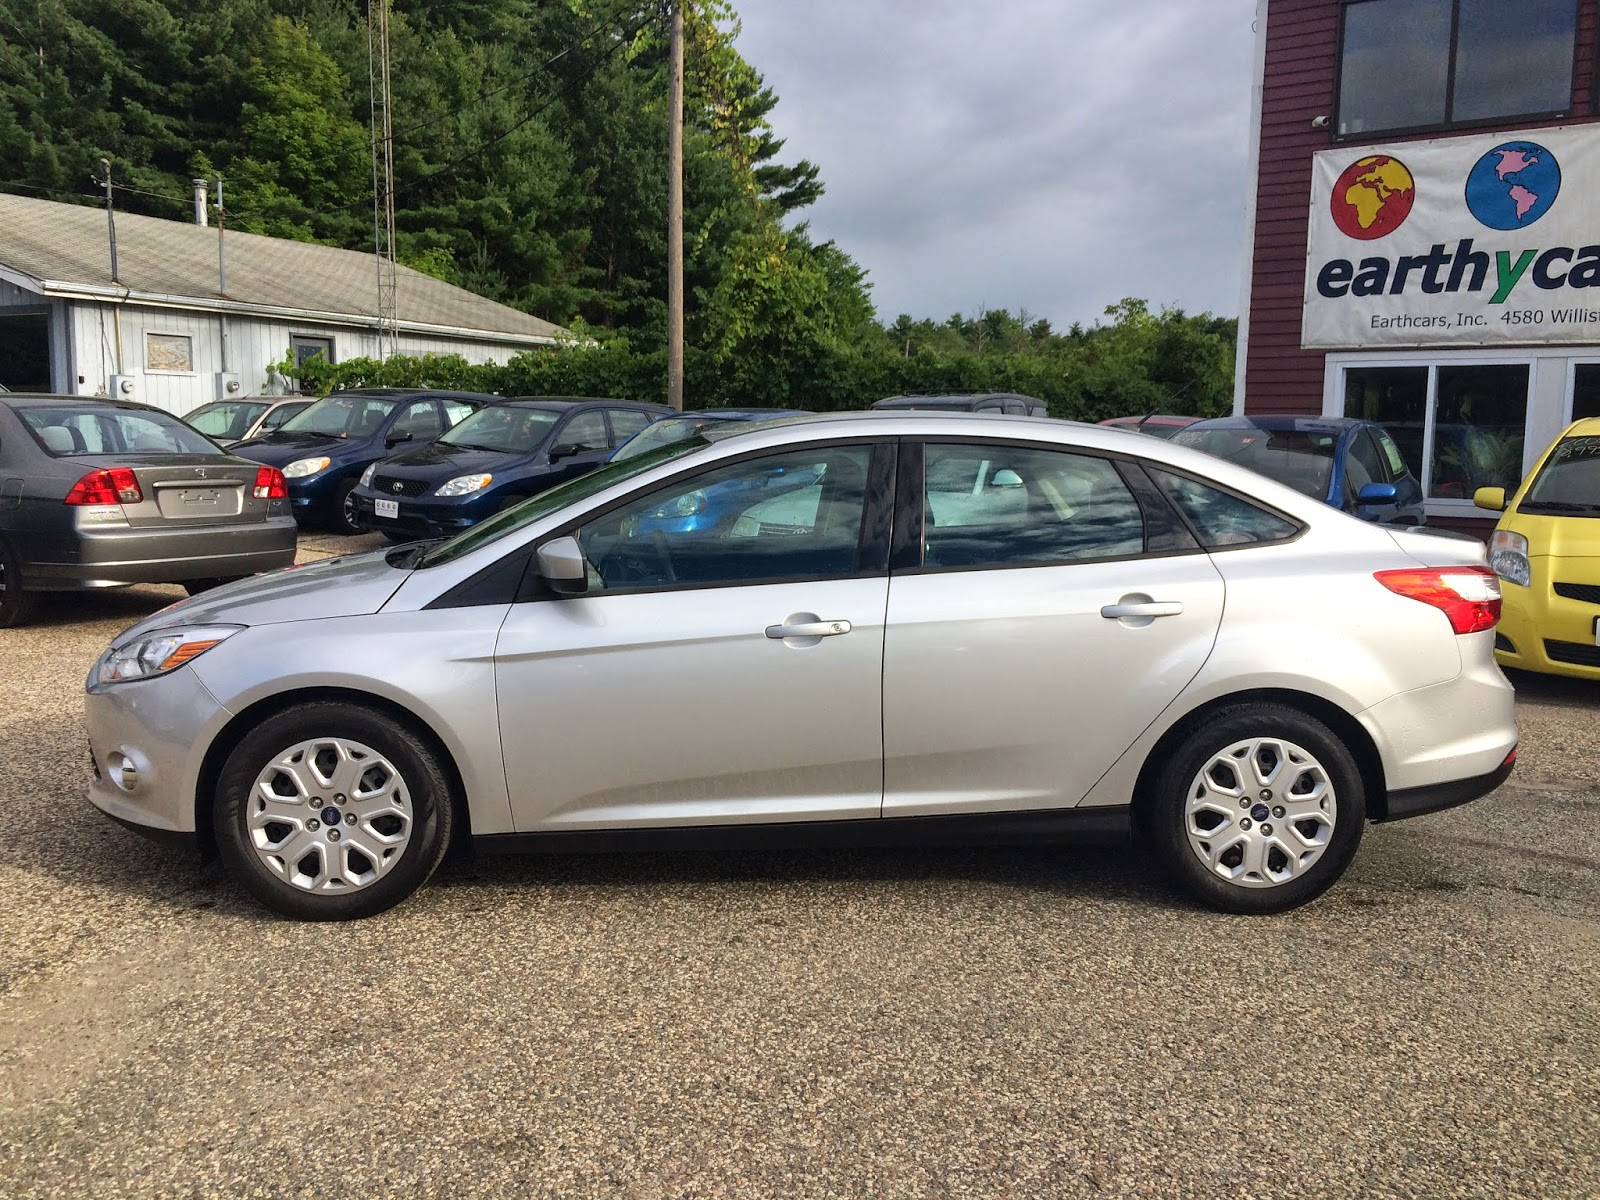 Exceptional EARTHY CAR OF THE WEEK: Silver 2012 Ford Focus SE Sedan